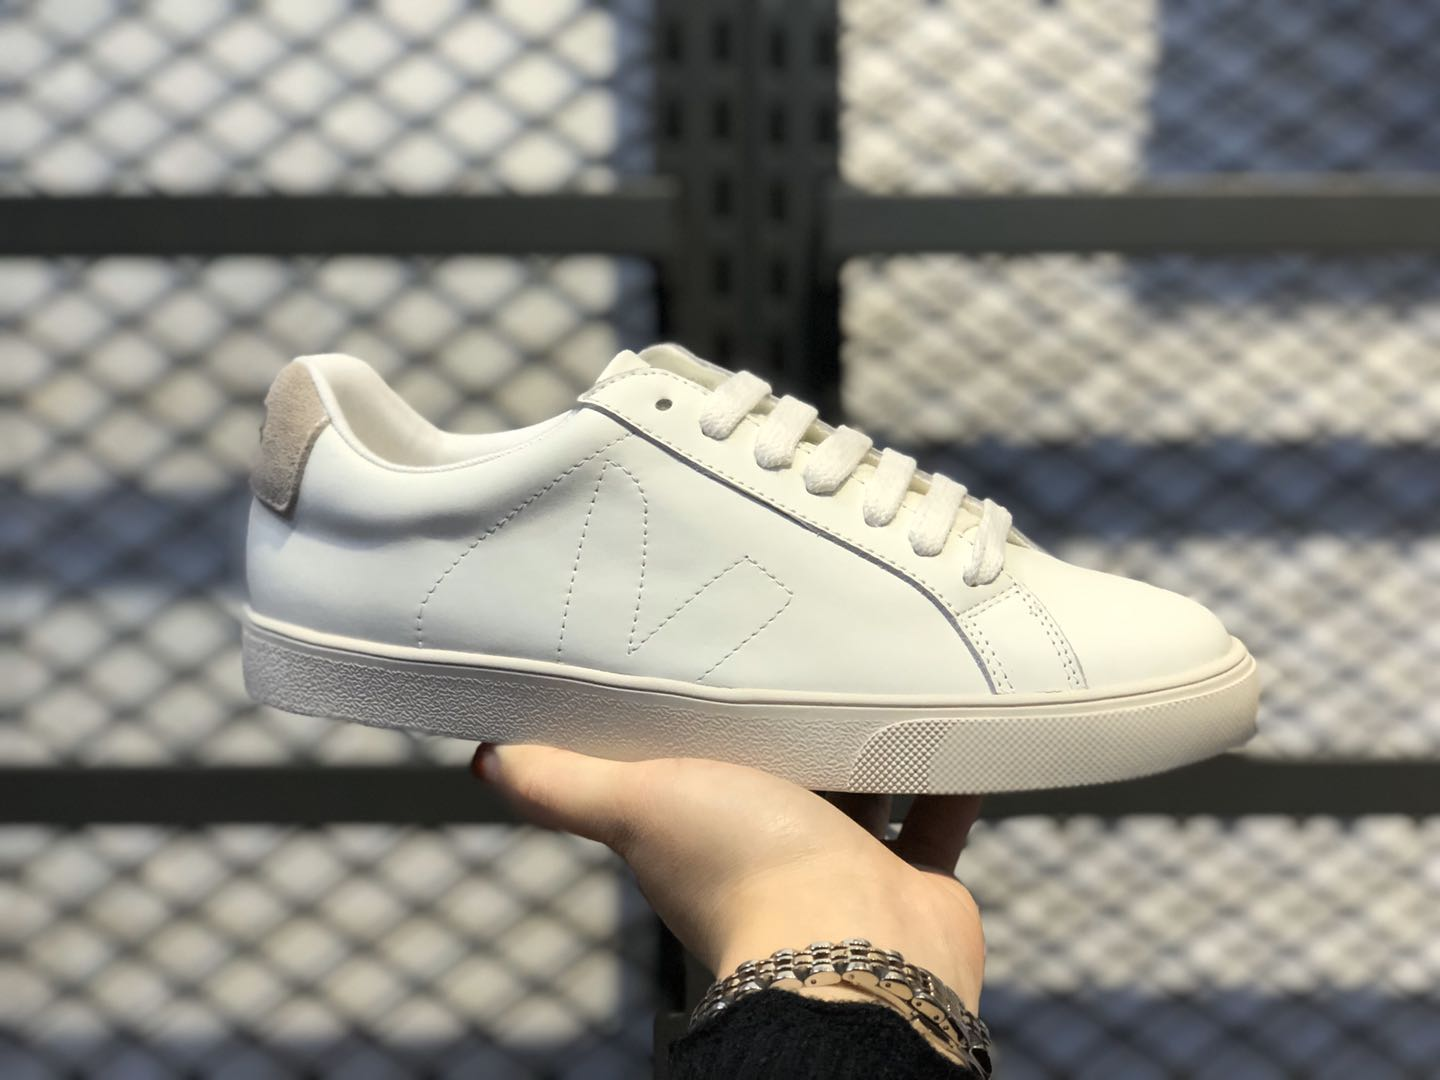 Veja Leather Extra Top Quality Sneakers Cloud White-Brown